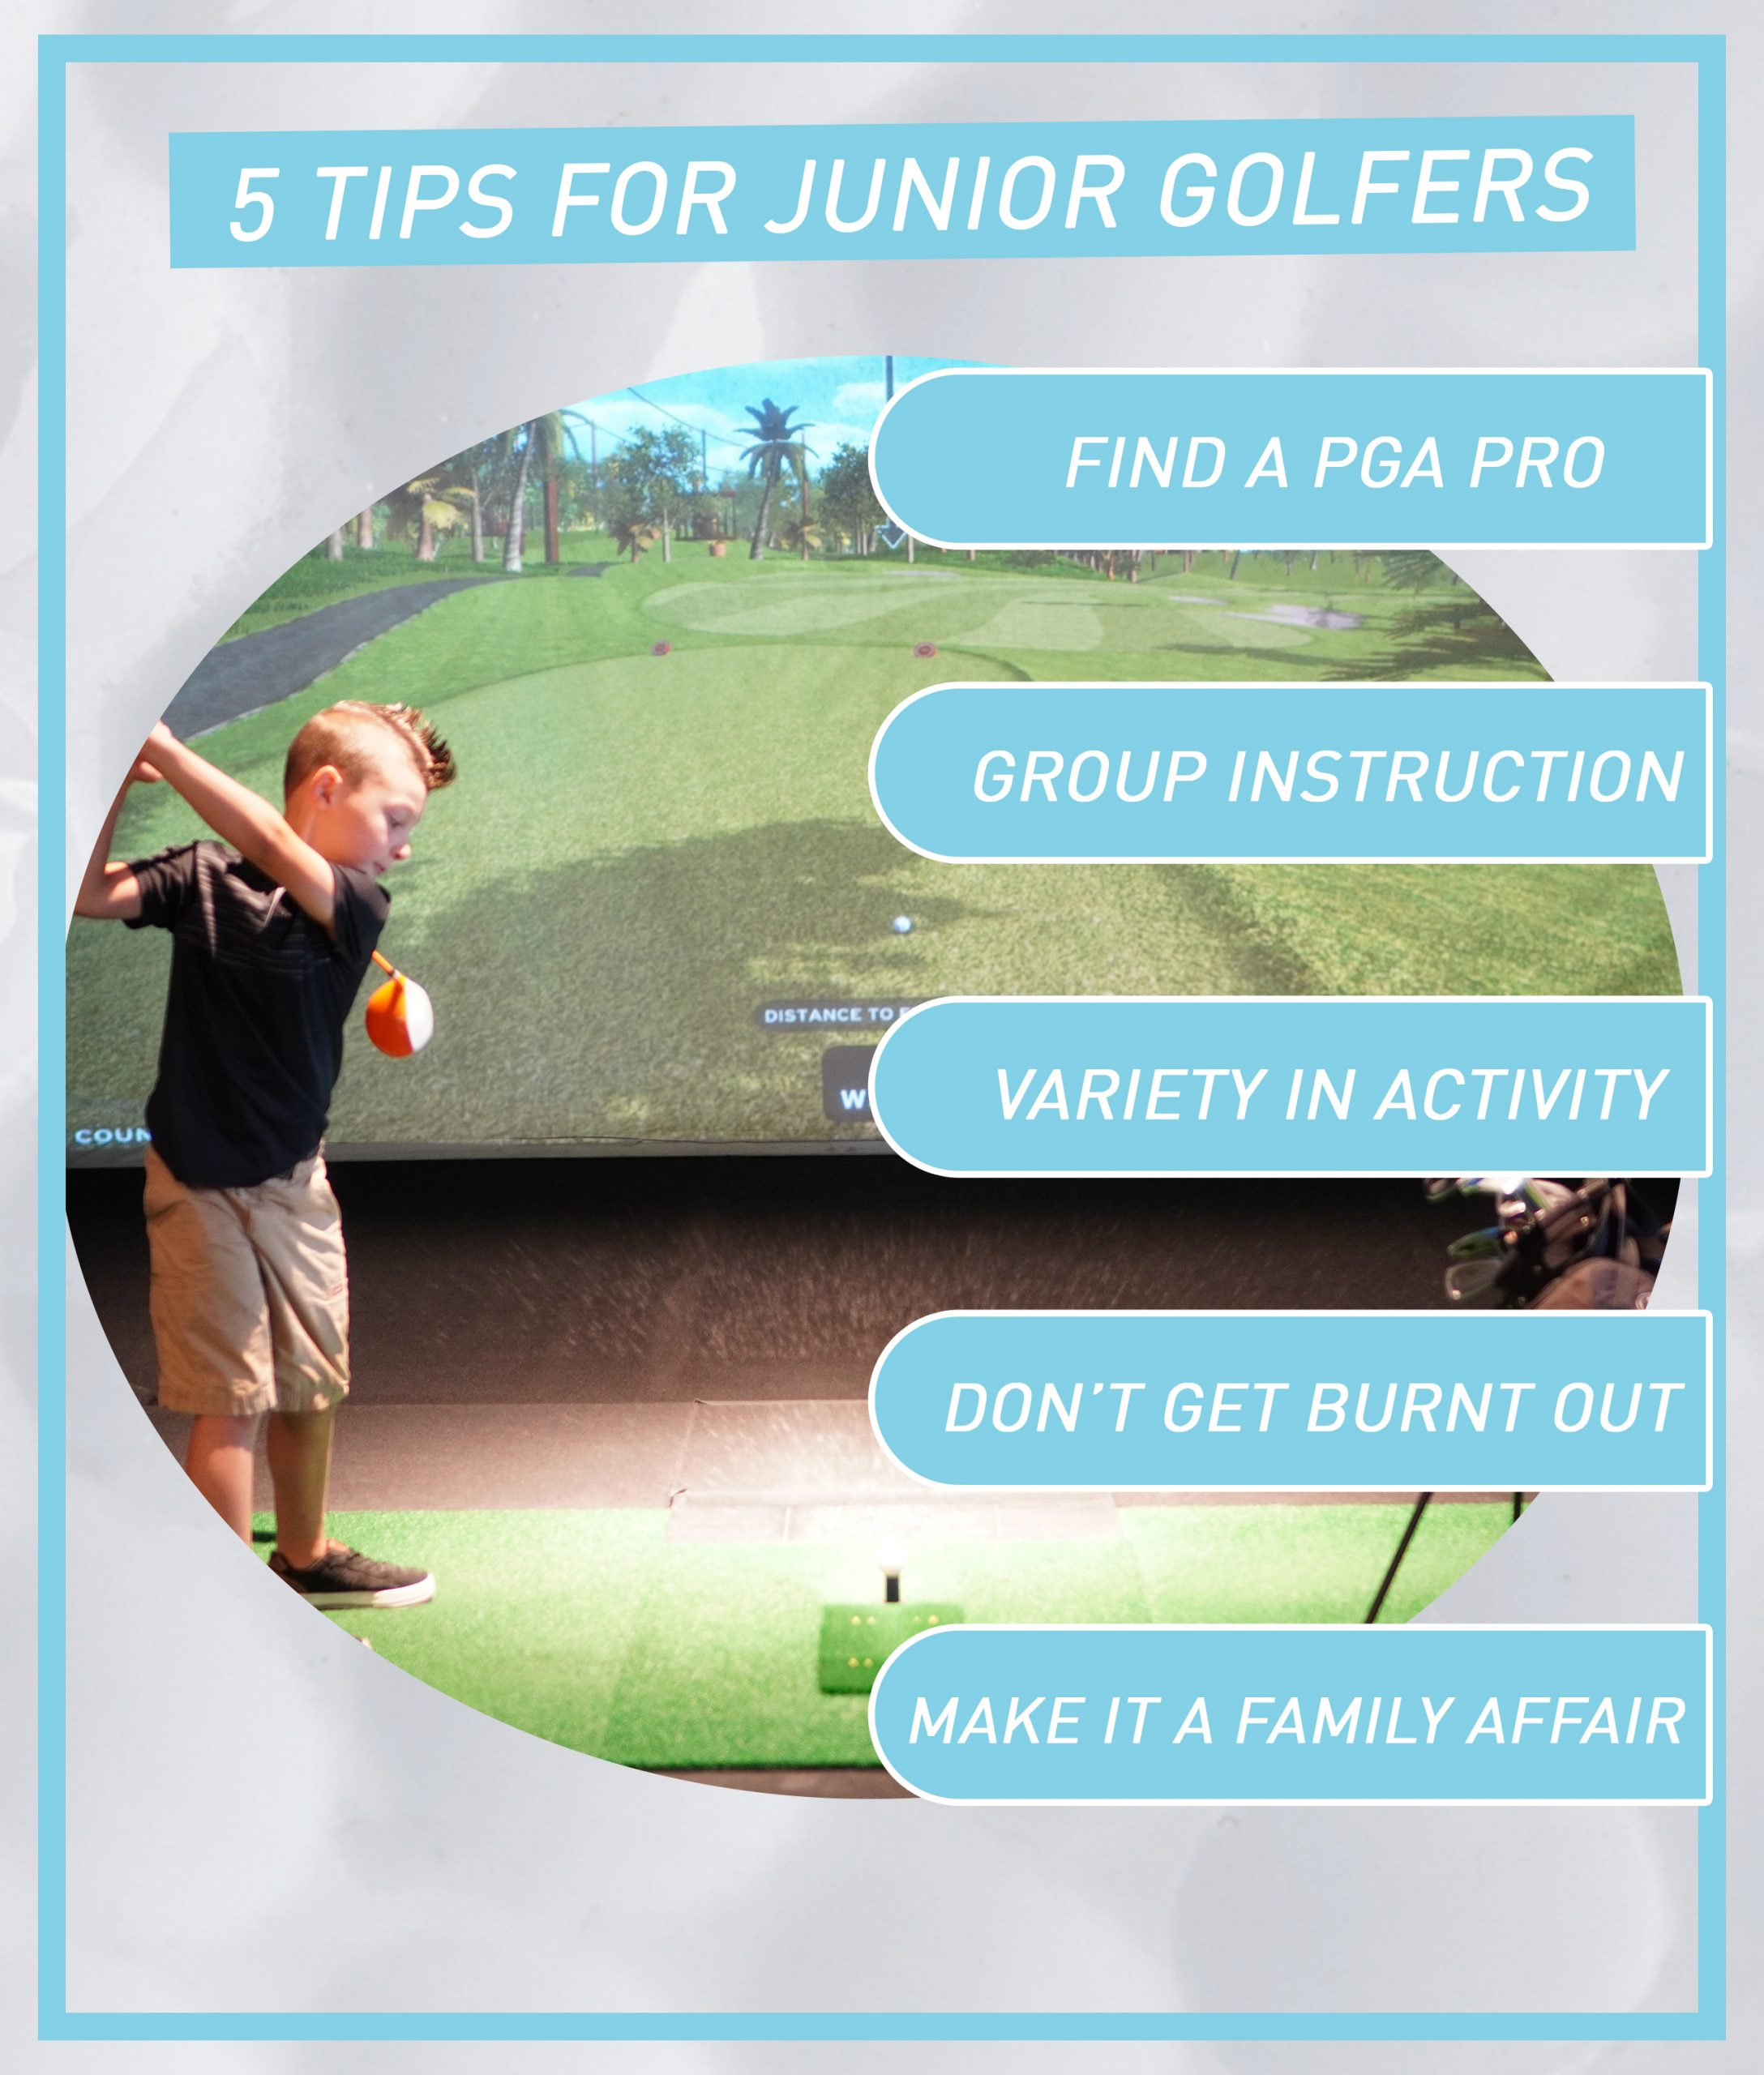 5 Tips for Junior Golfers